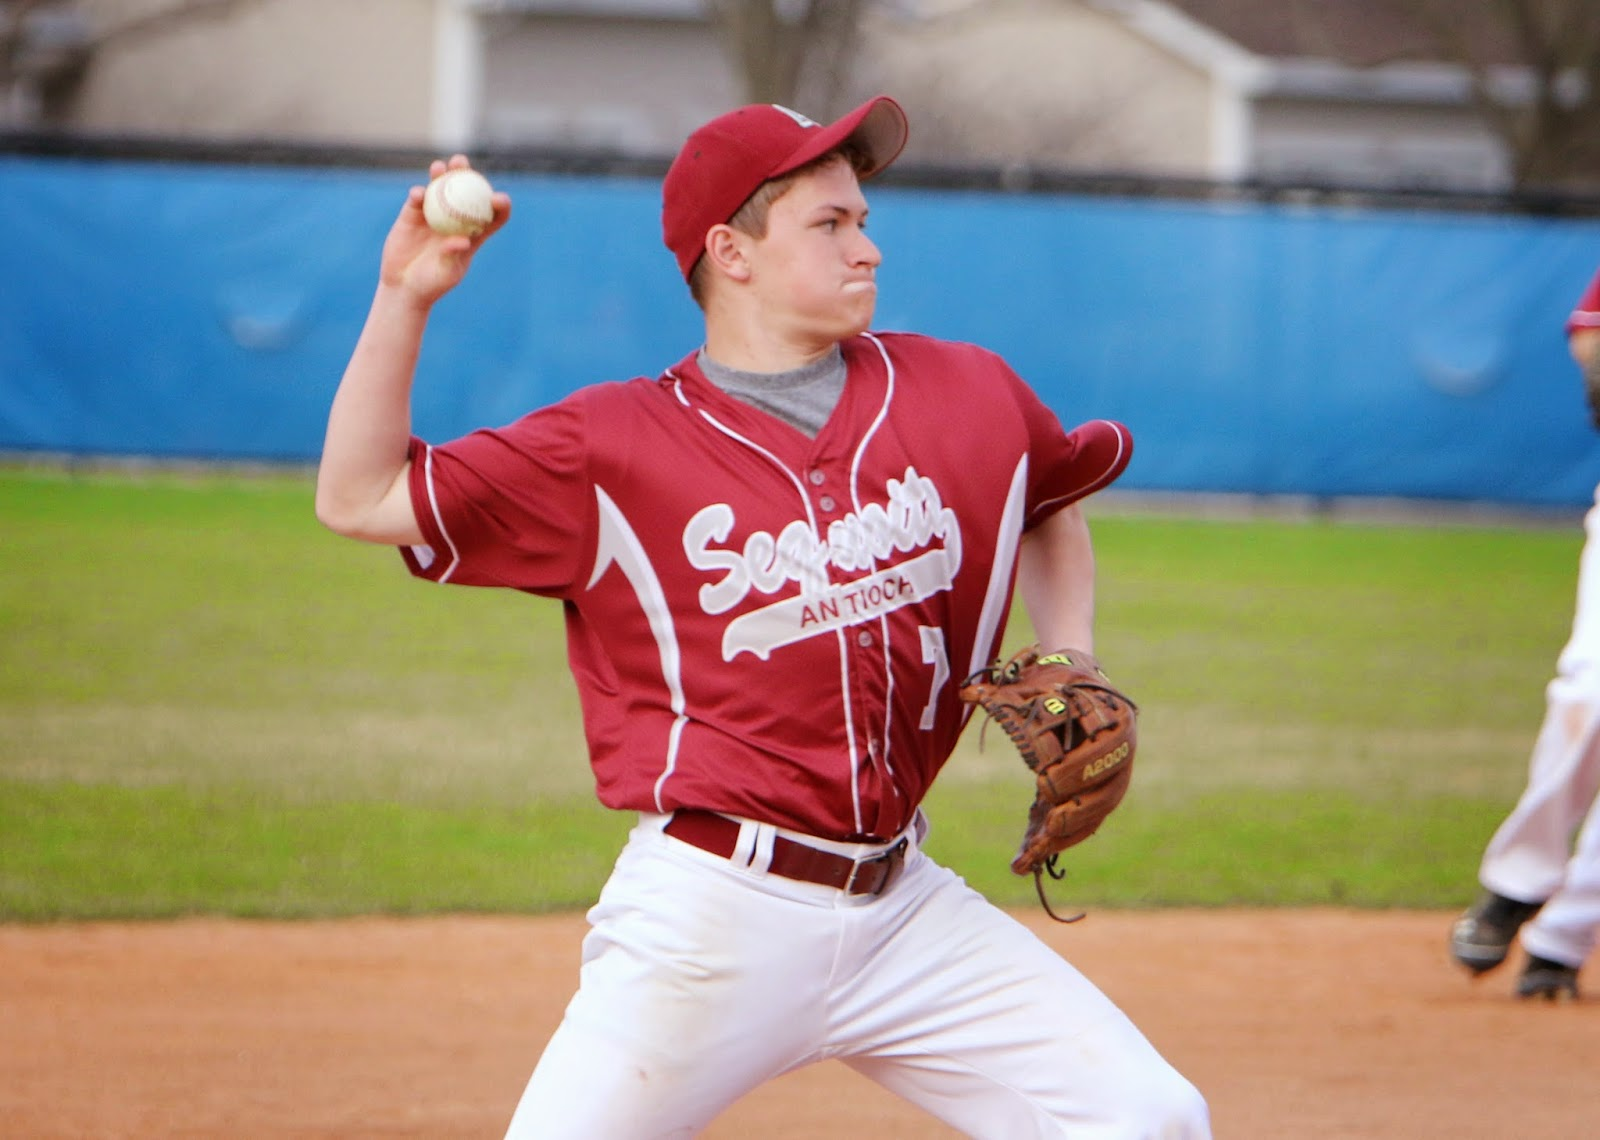 Senior Conner Geidner plays the ball and throws it to first looking for an out.